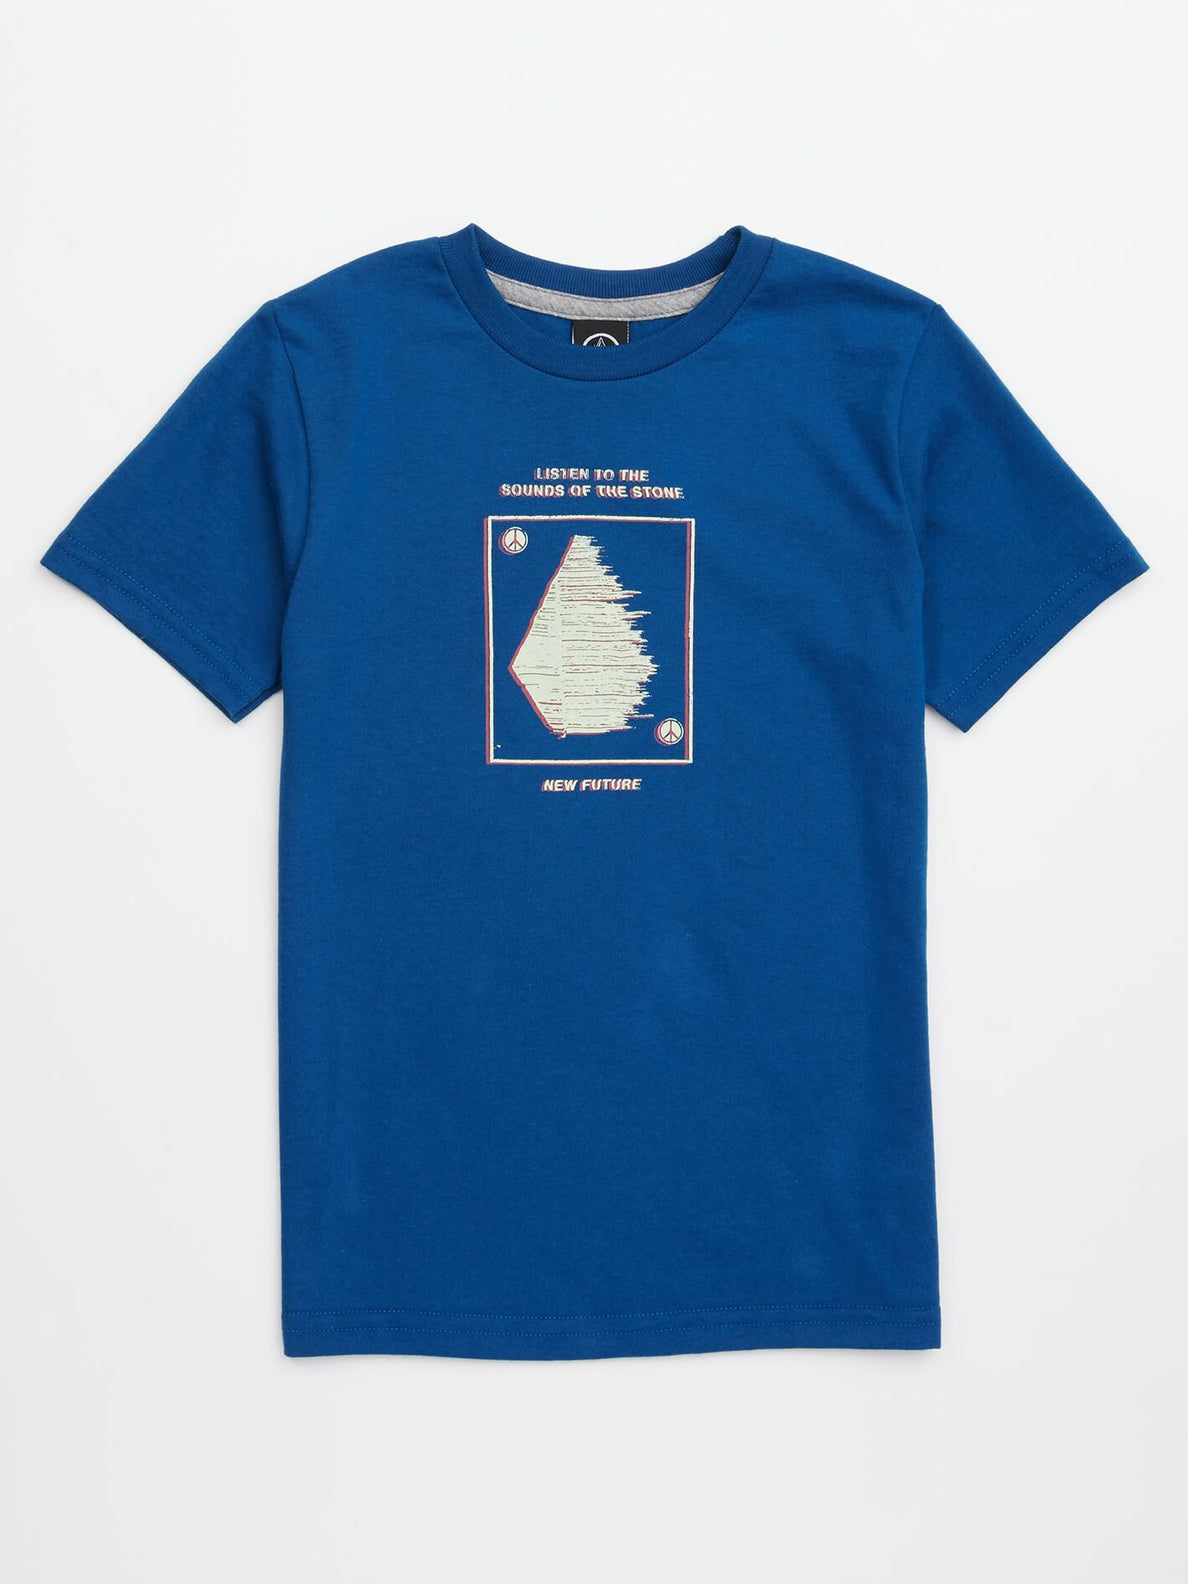 Little Boys Sound Tee In Camper Blue, Front View